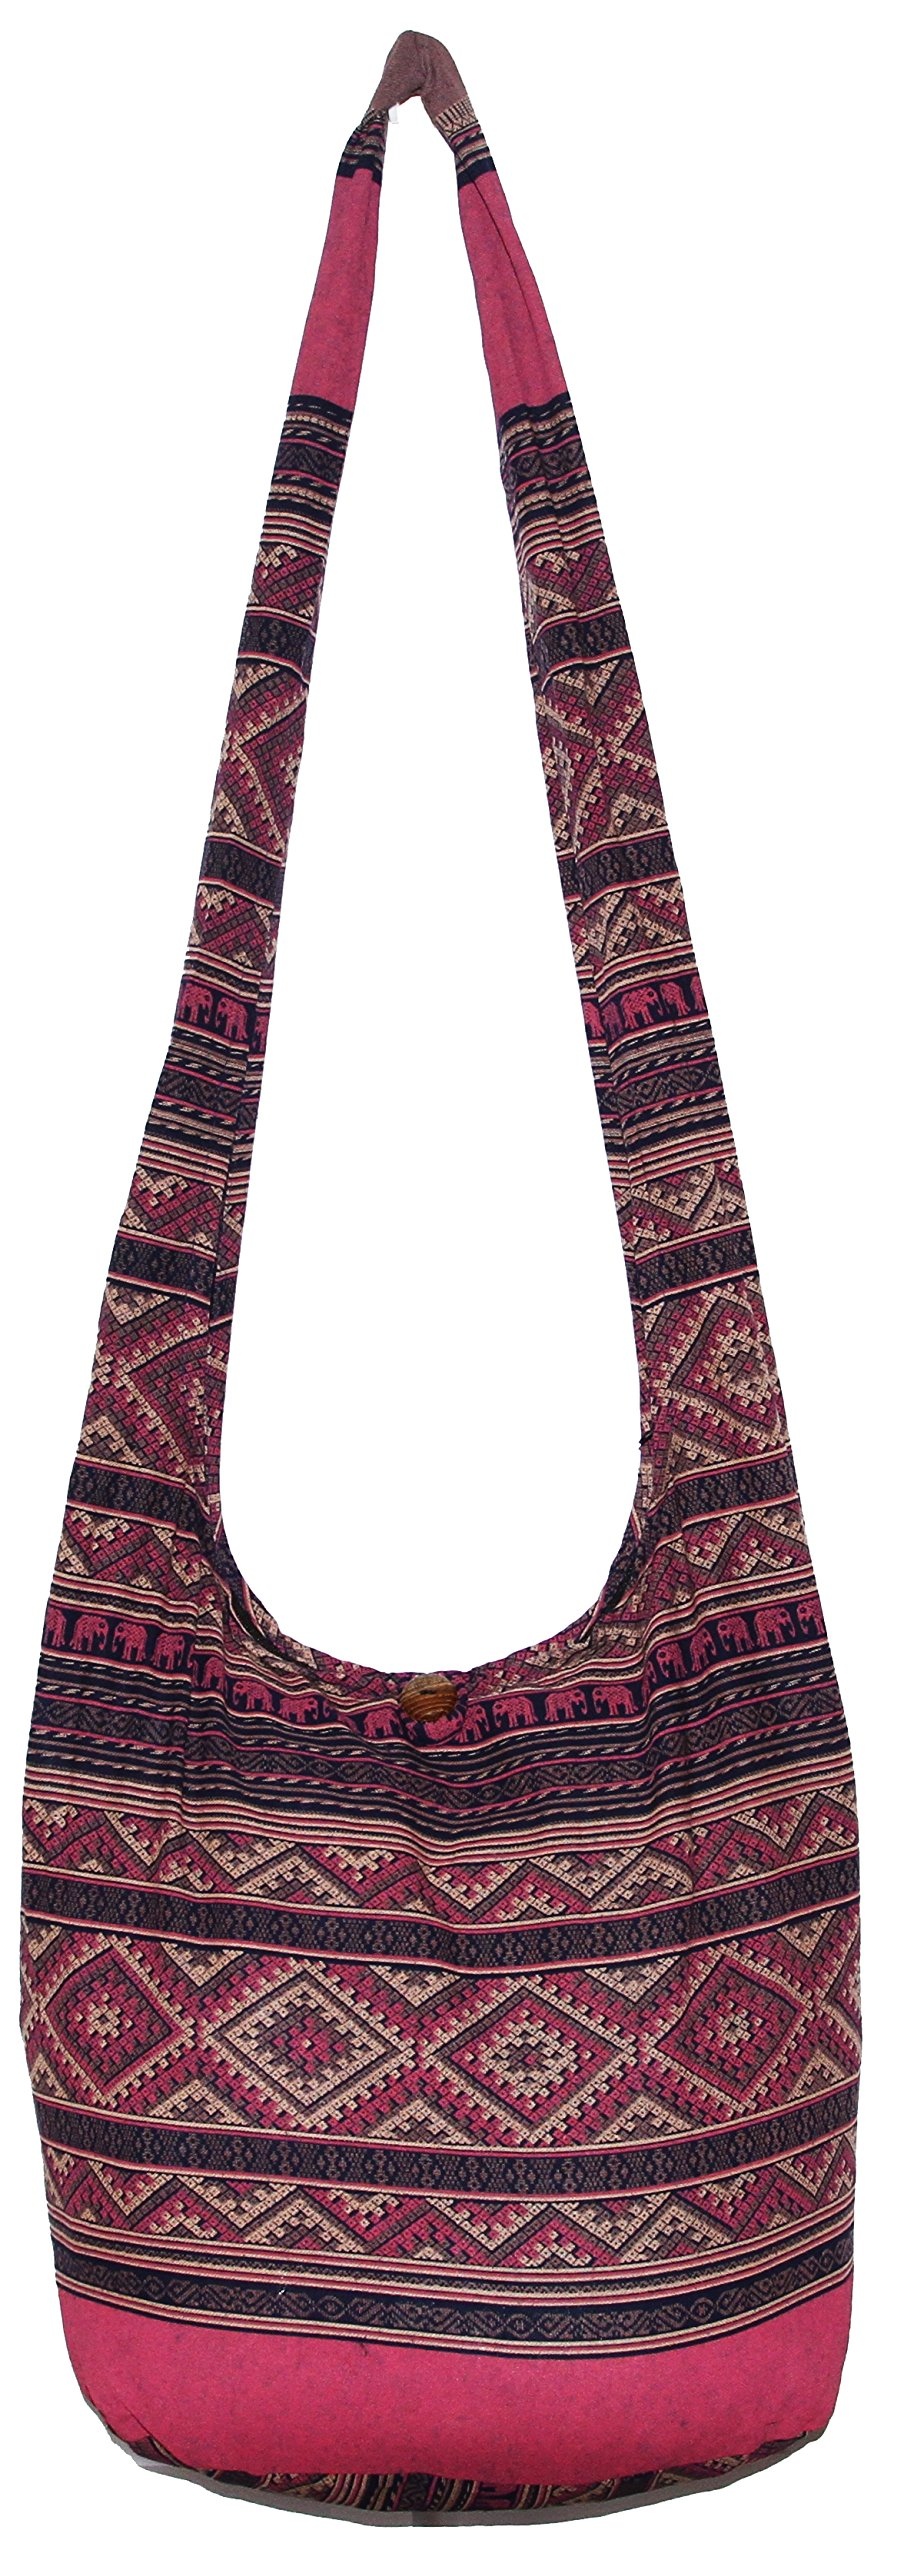 Elephant Hippie Bohemian Shoulder Hobo Boho Cross Body Bag 37 Inch (DarkBluePurple)